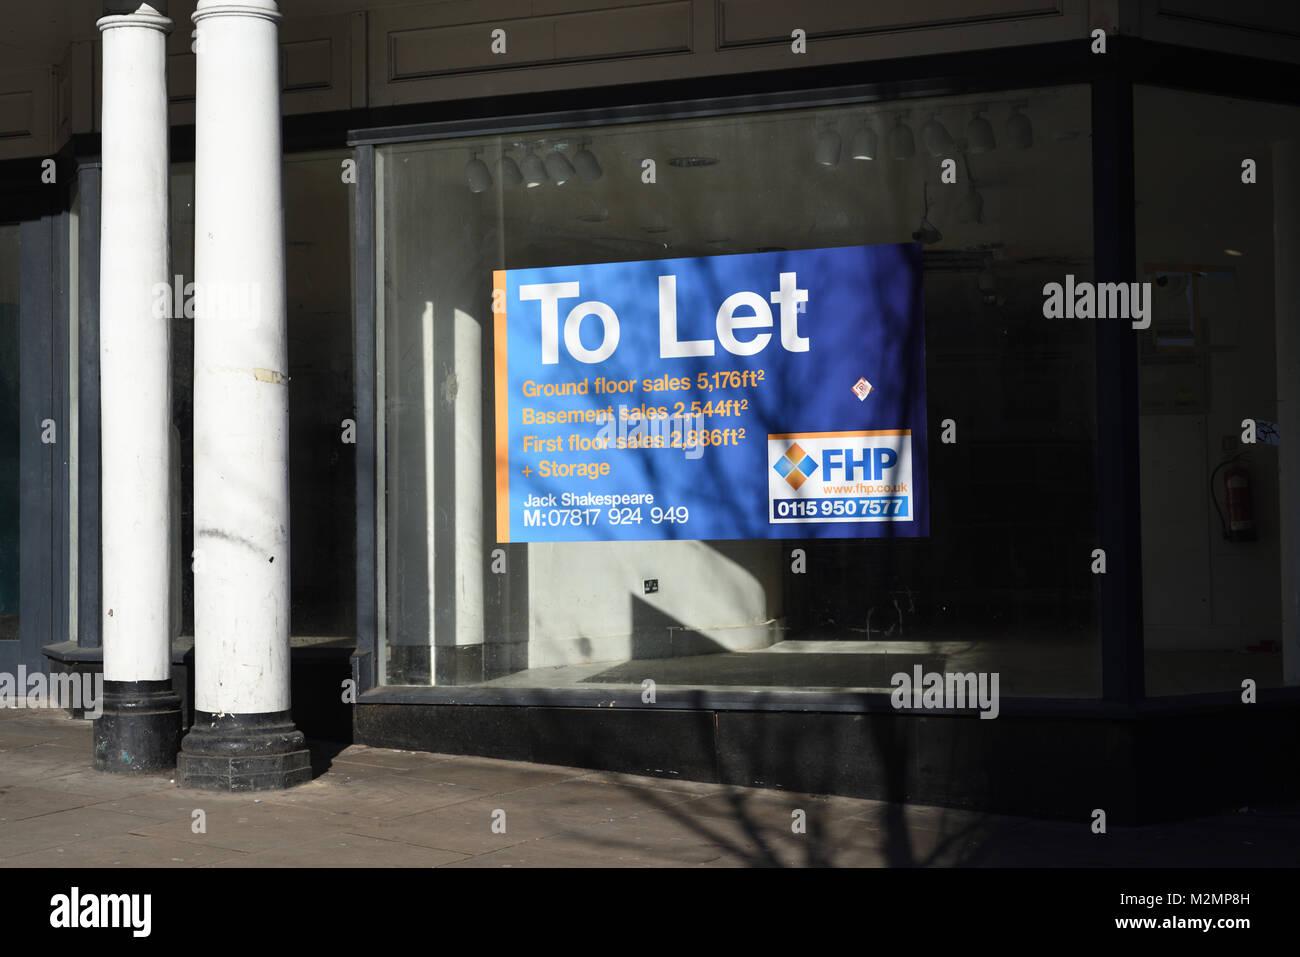 Retail Shop To LET IN Nottingham,UK. - Stock Image